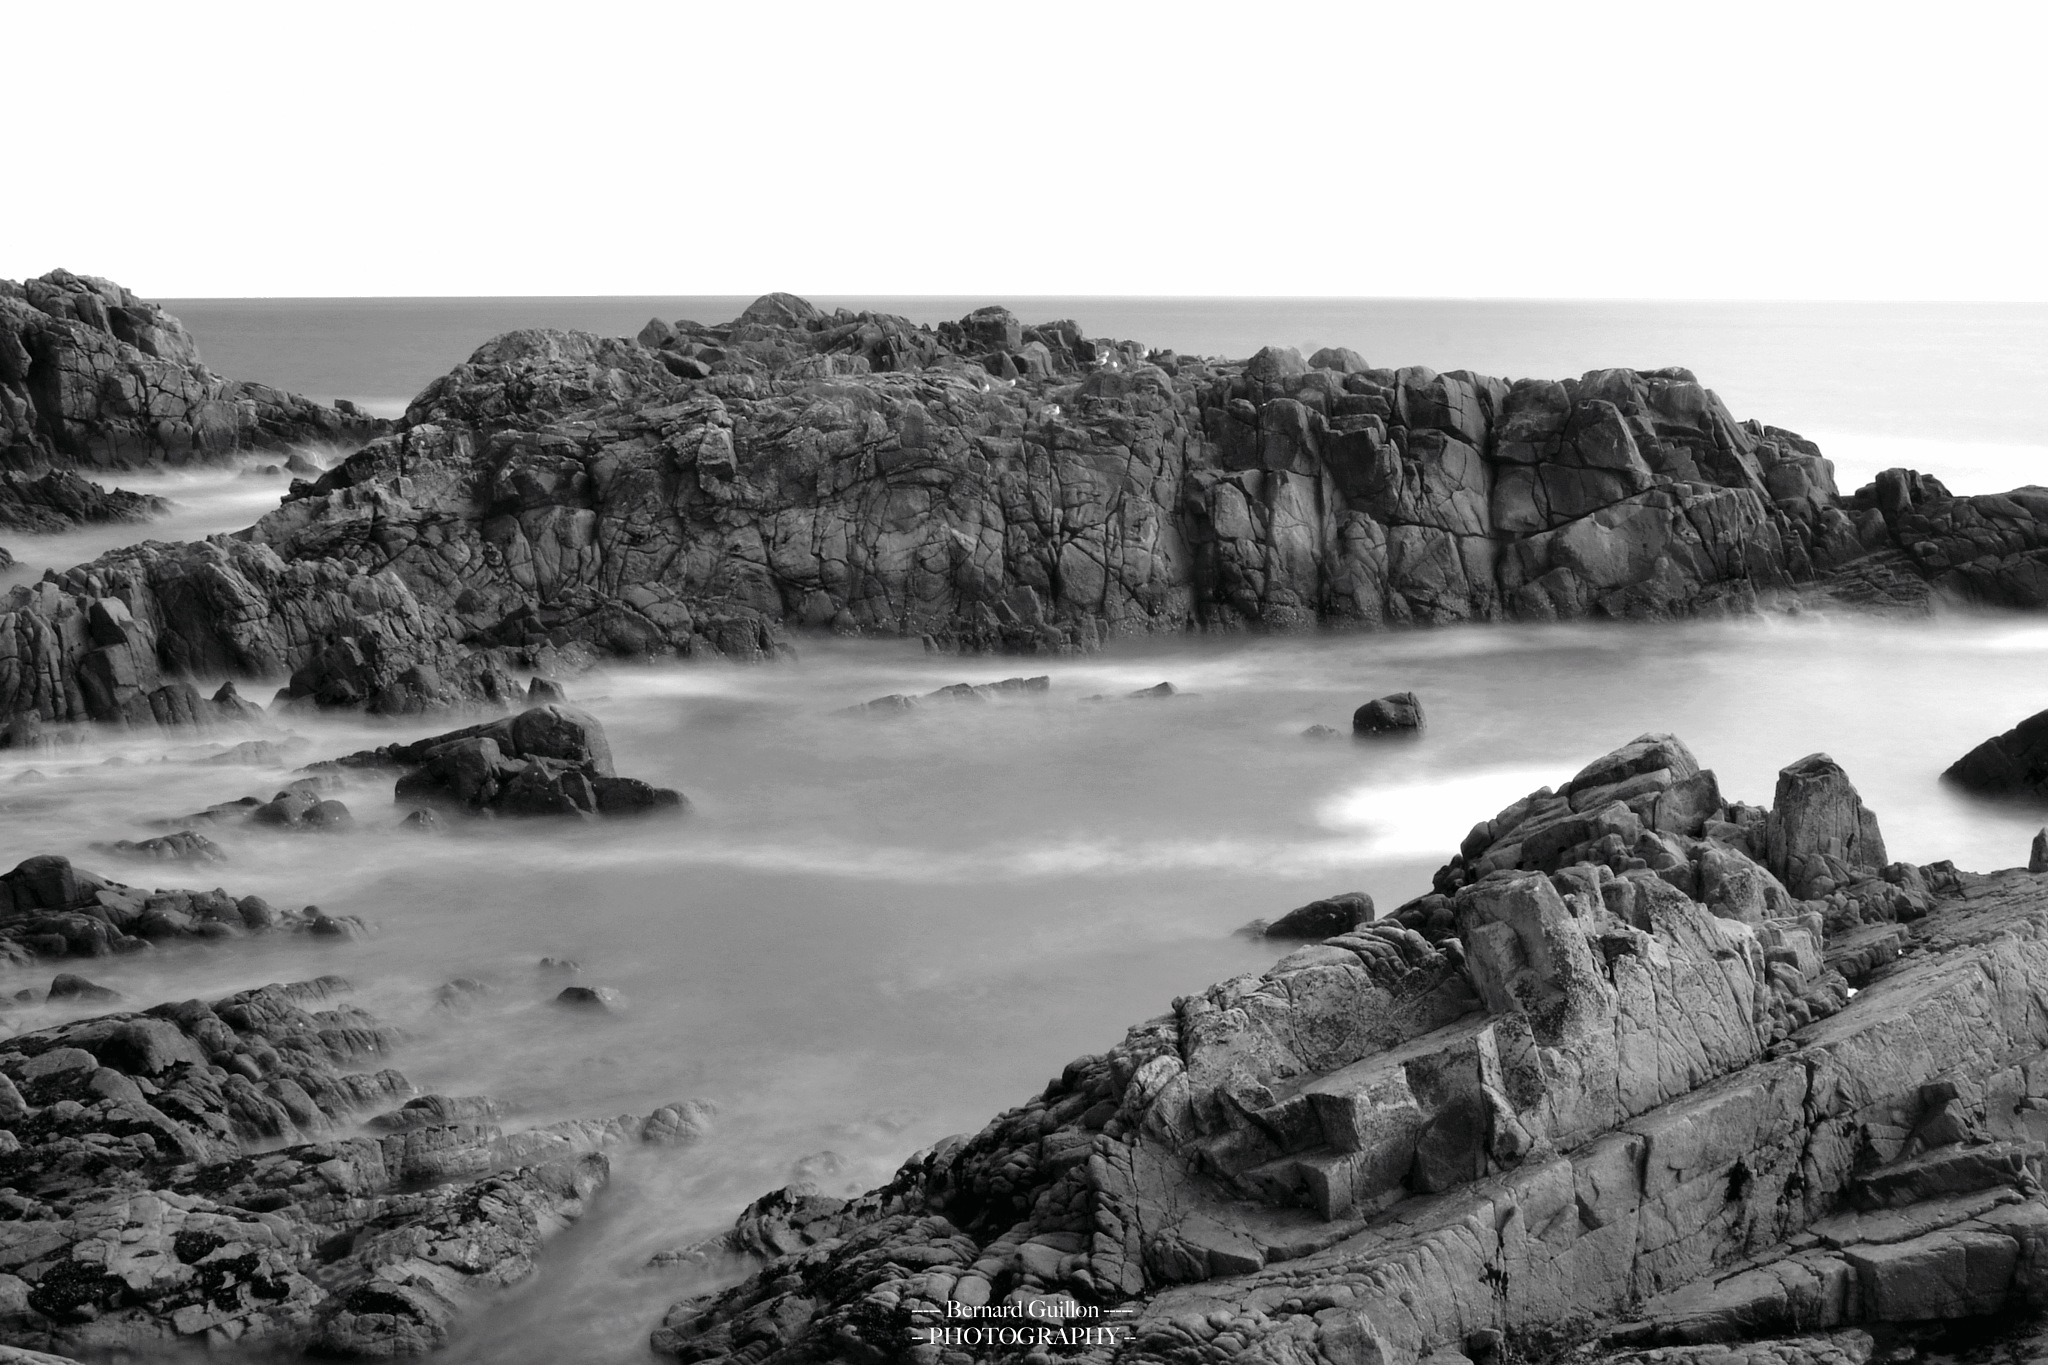 The wild coast of Brittany by Bernard Guillon